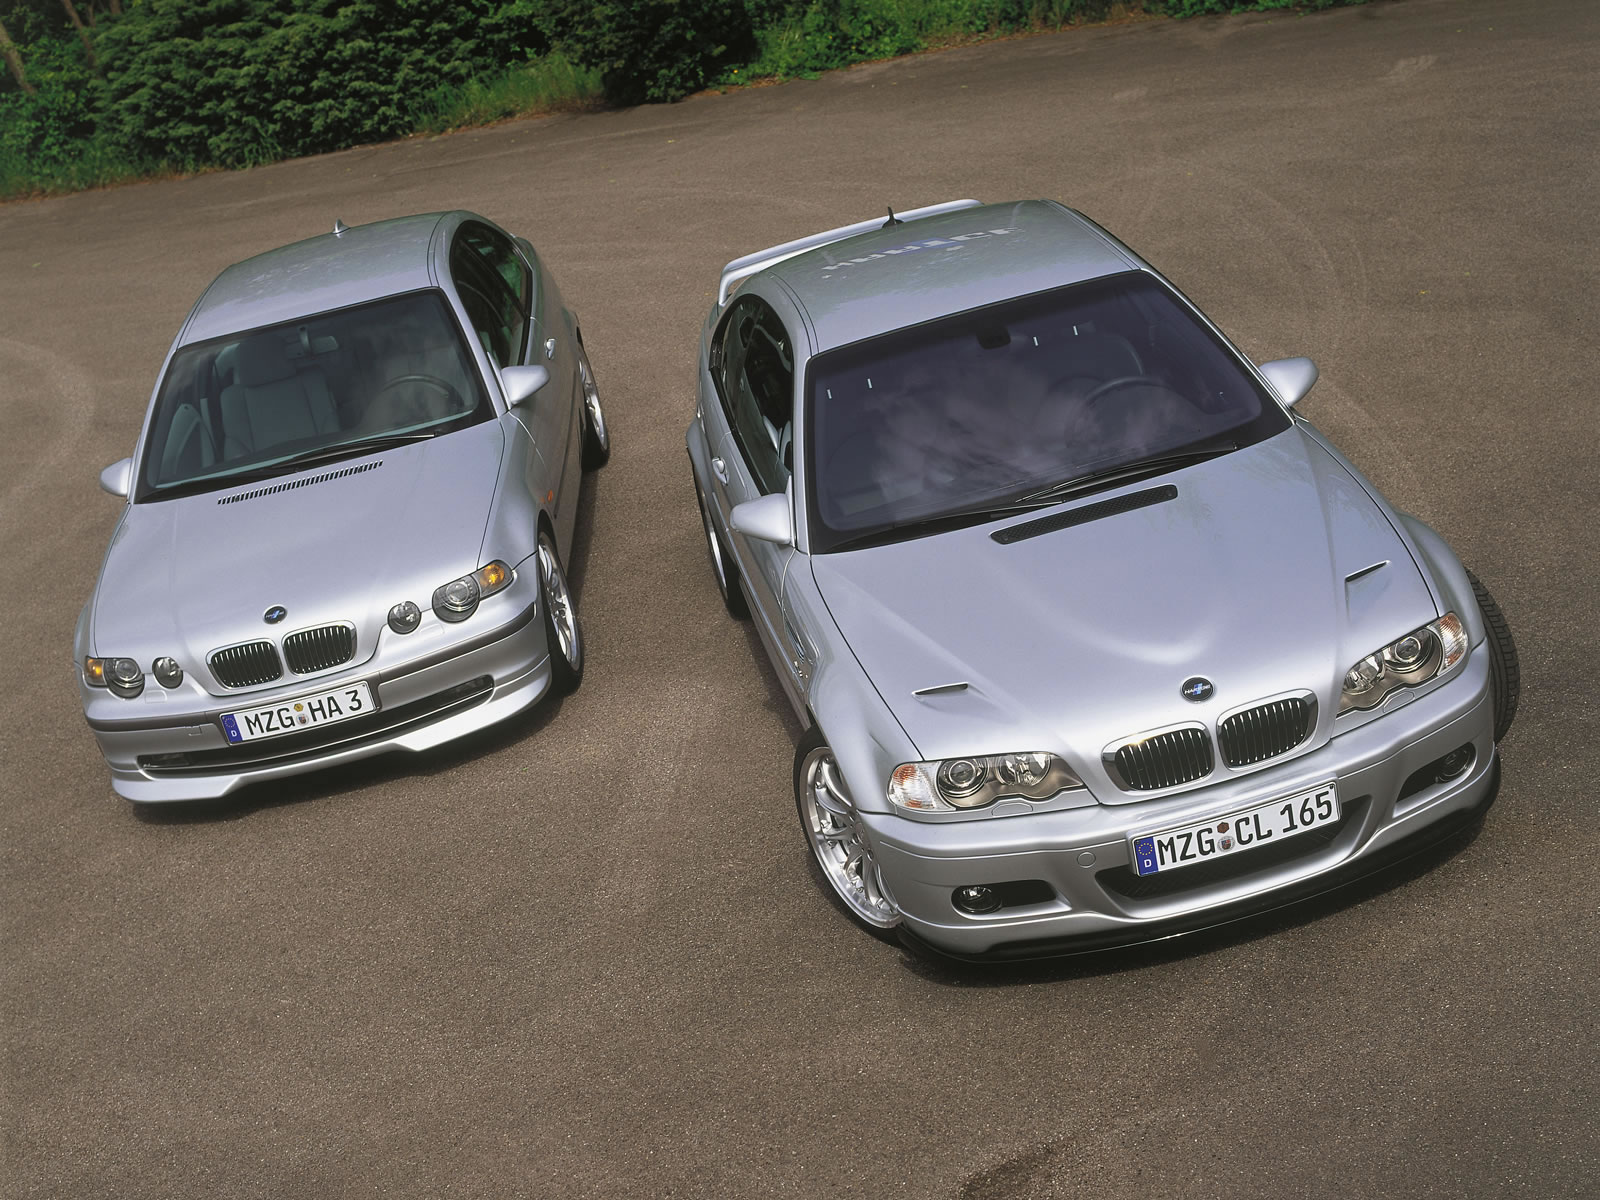 Hartge 3 Series E46 Photos Photogallery With 4 Pics